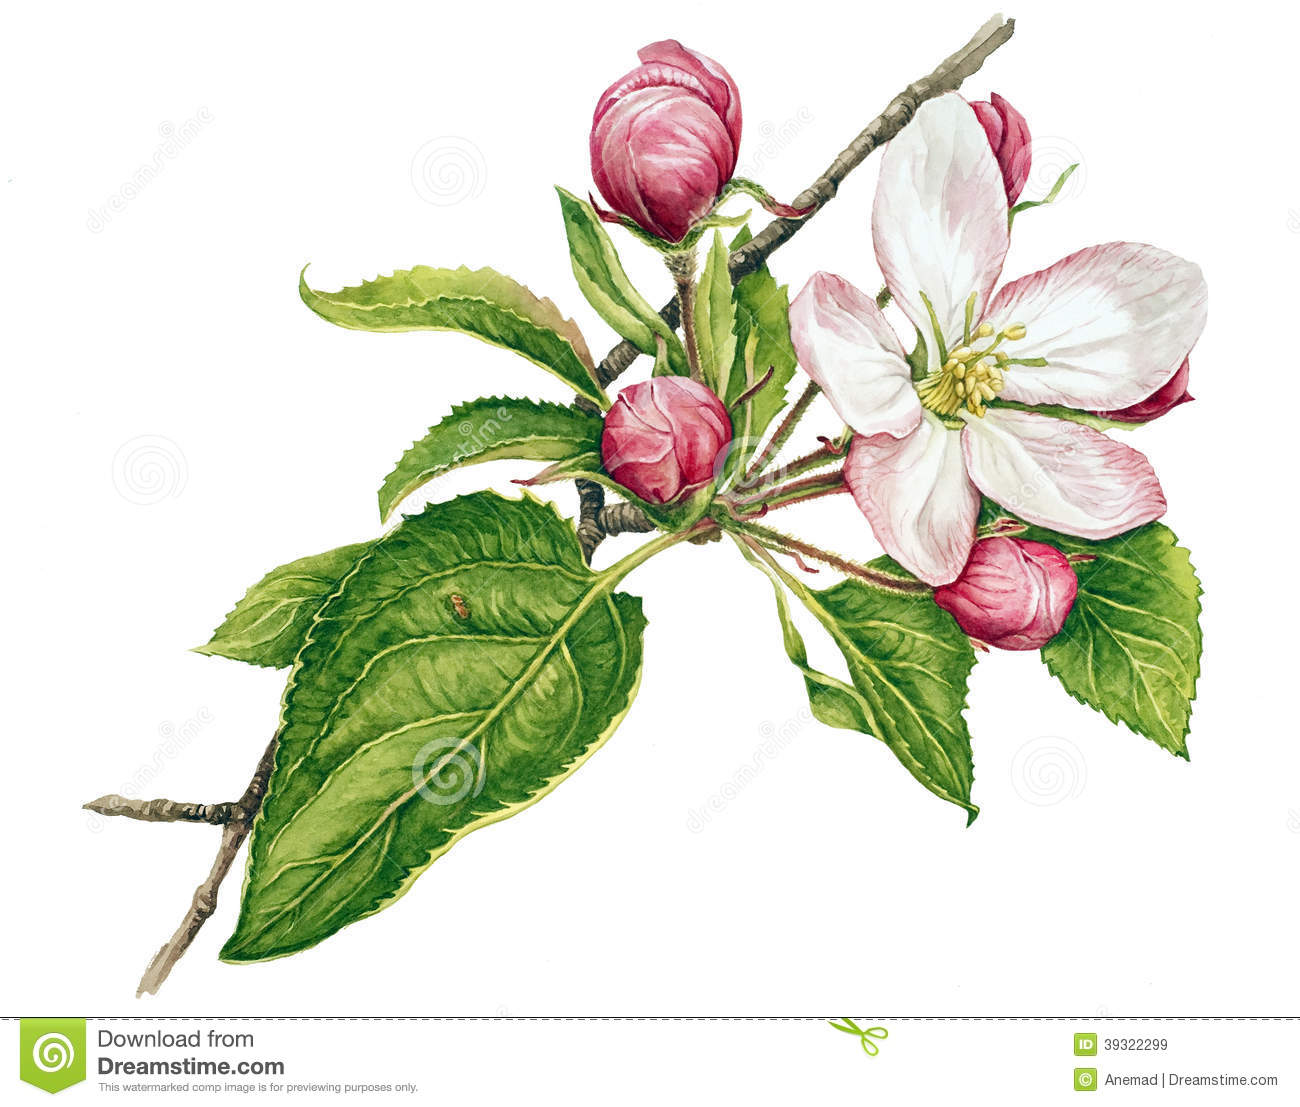 Cherry Tree clipart apple blossom Cherry Explore Apple Drawings drawings